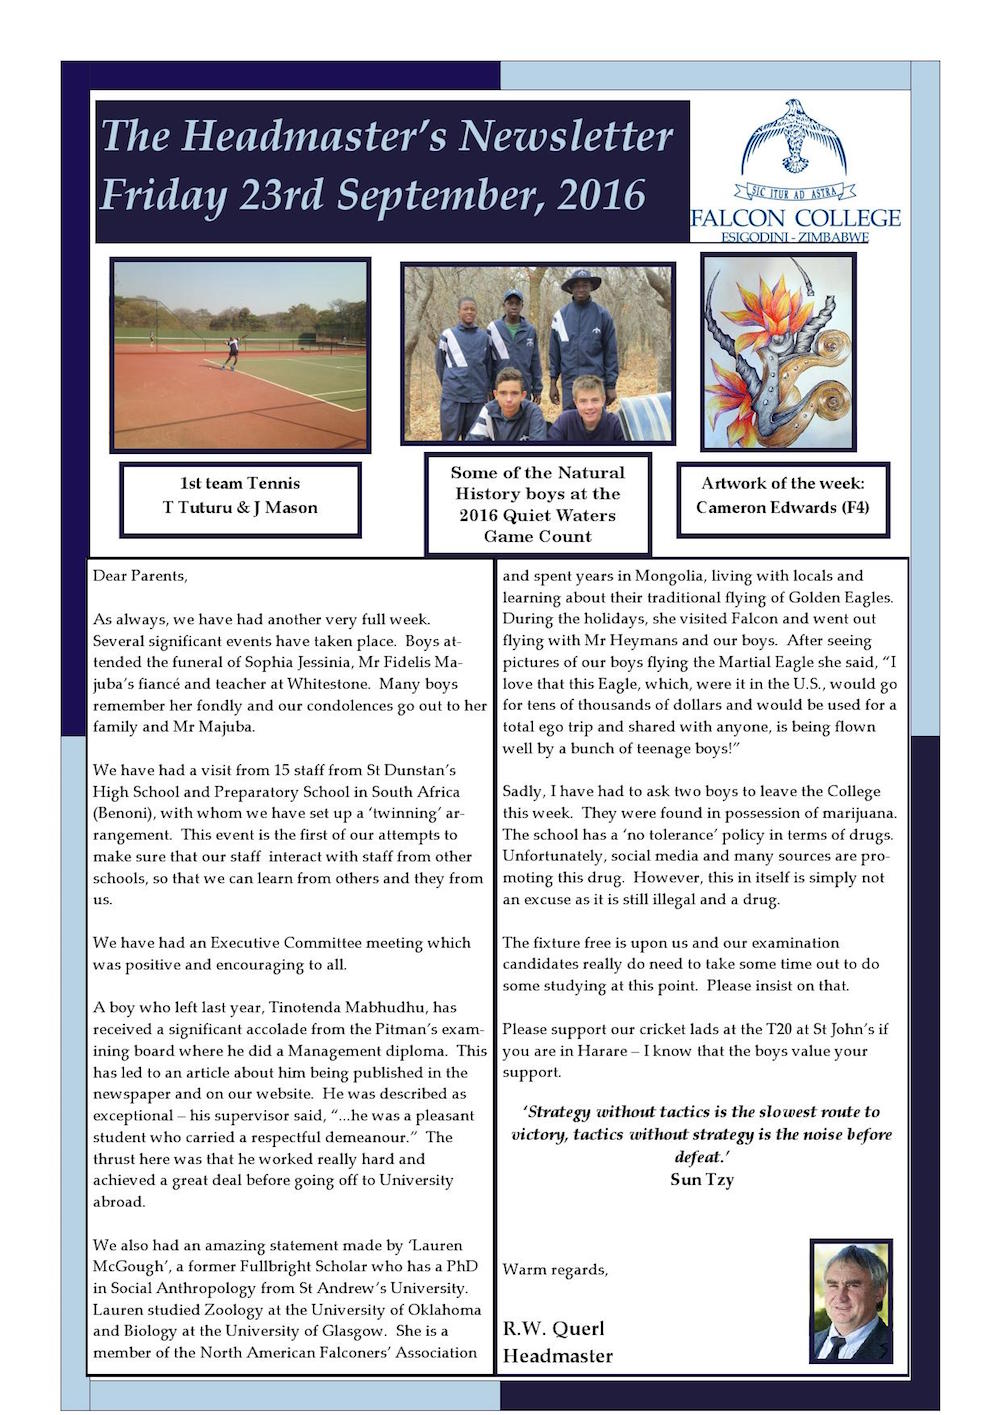 headmasters-newsletter-friday-23rd-september-2016-edited_000001